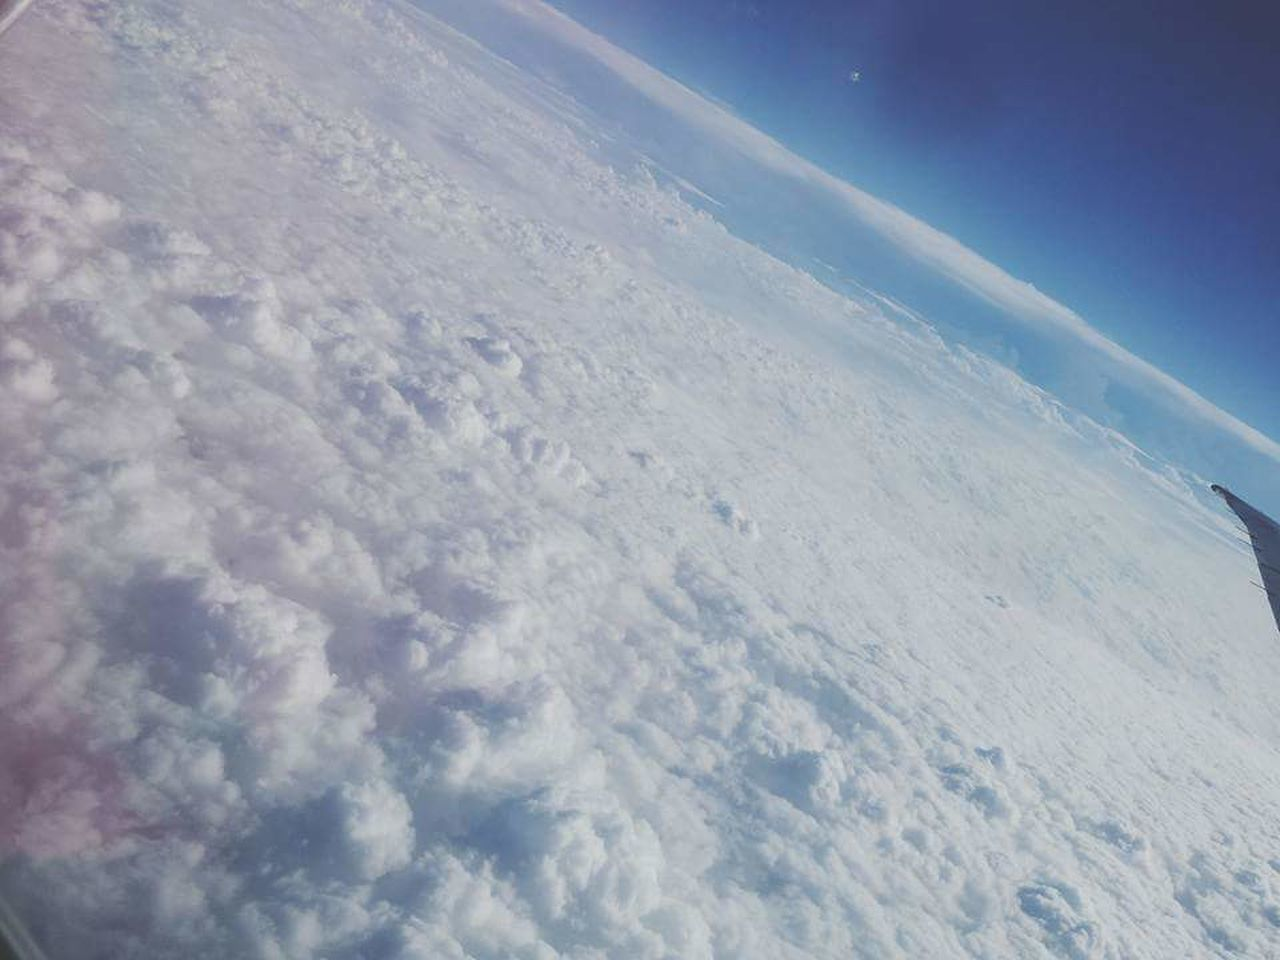 cloud - sky, sky, nature, aerial view, outdoors, day, scenics, space, no people, beauty in nature, winter, airplane, planet earth, satellite view, astronomy